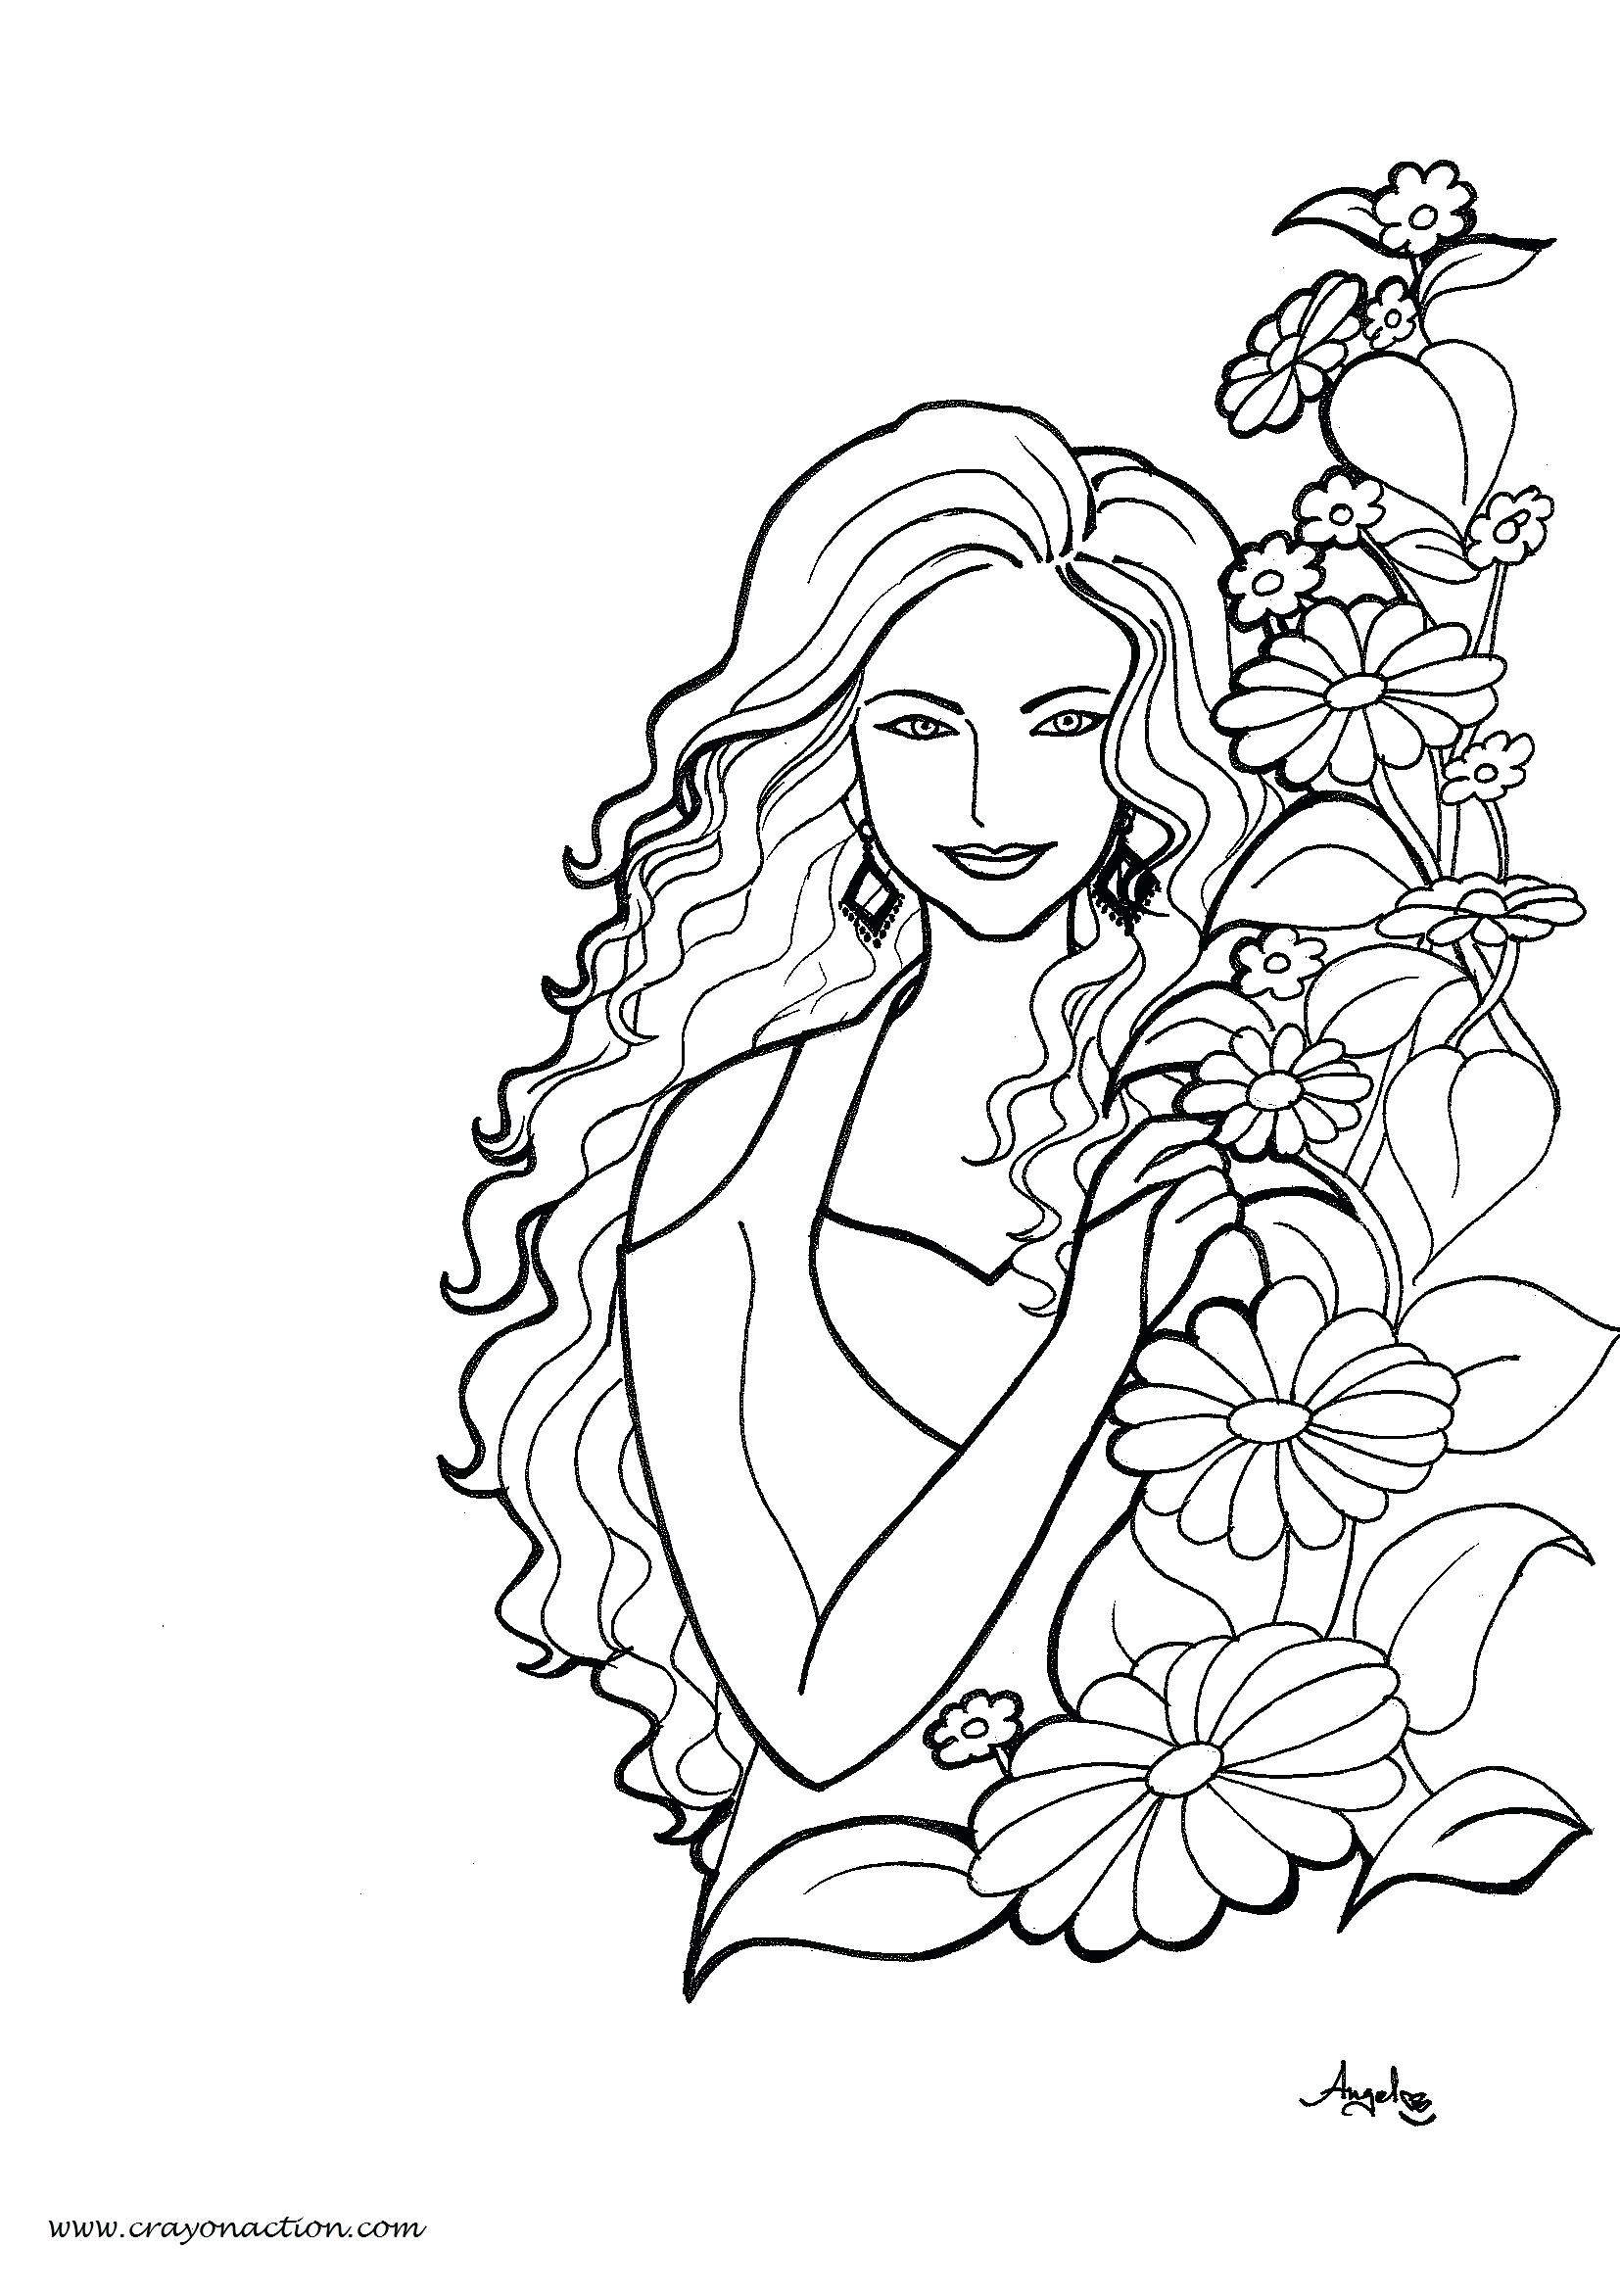 Coloring Pages Women At Getdrawings Com Free For Personal Use